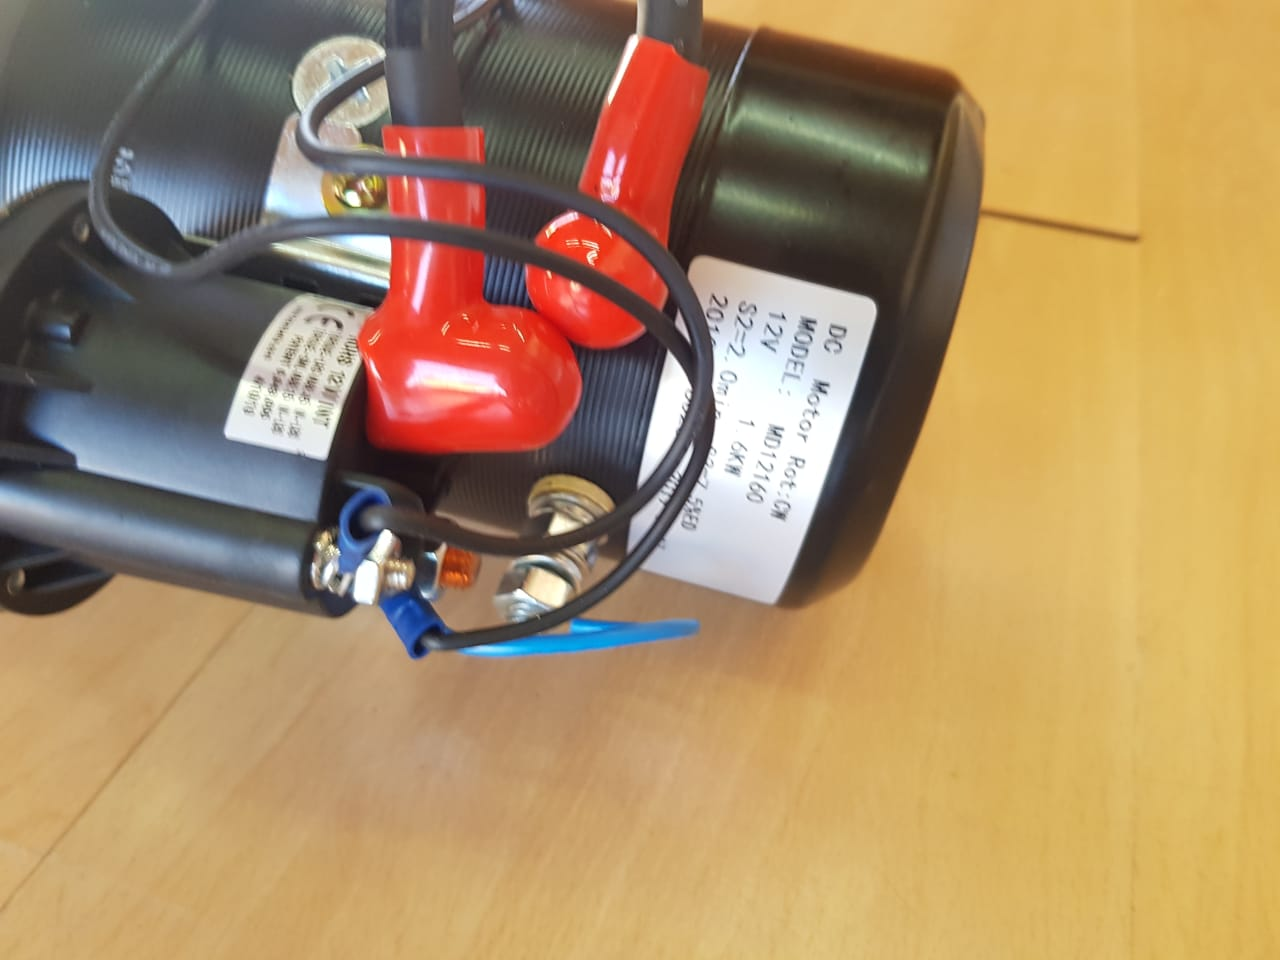 Electric hydraulic power pack replacement 12v and 24 v. Contact us for more info